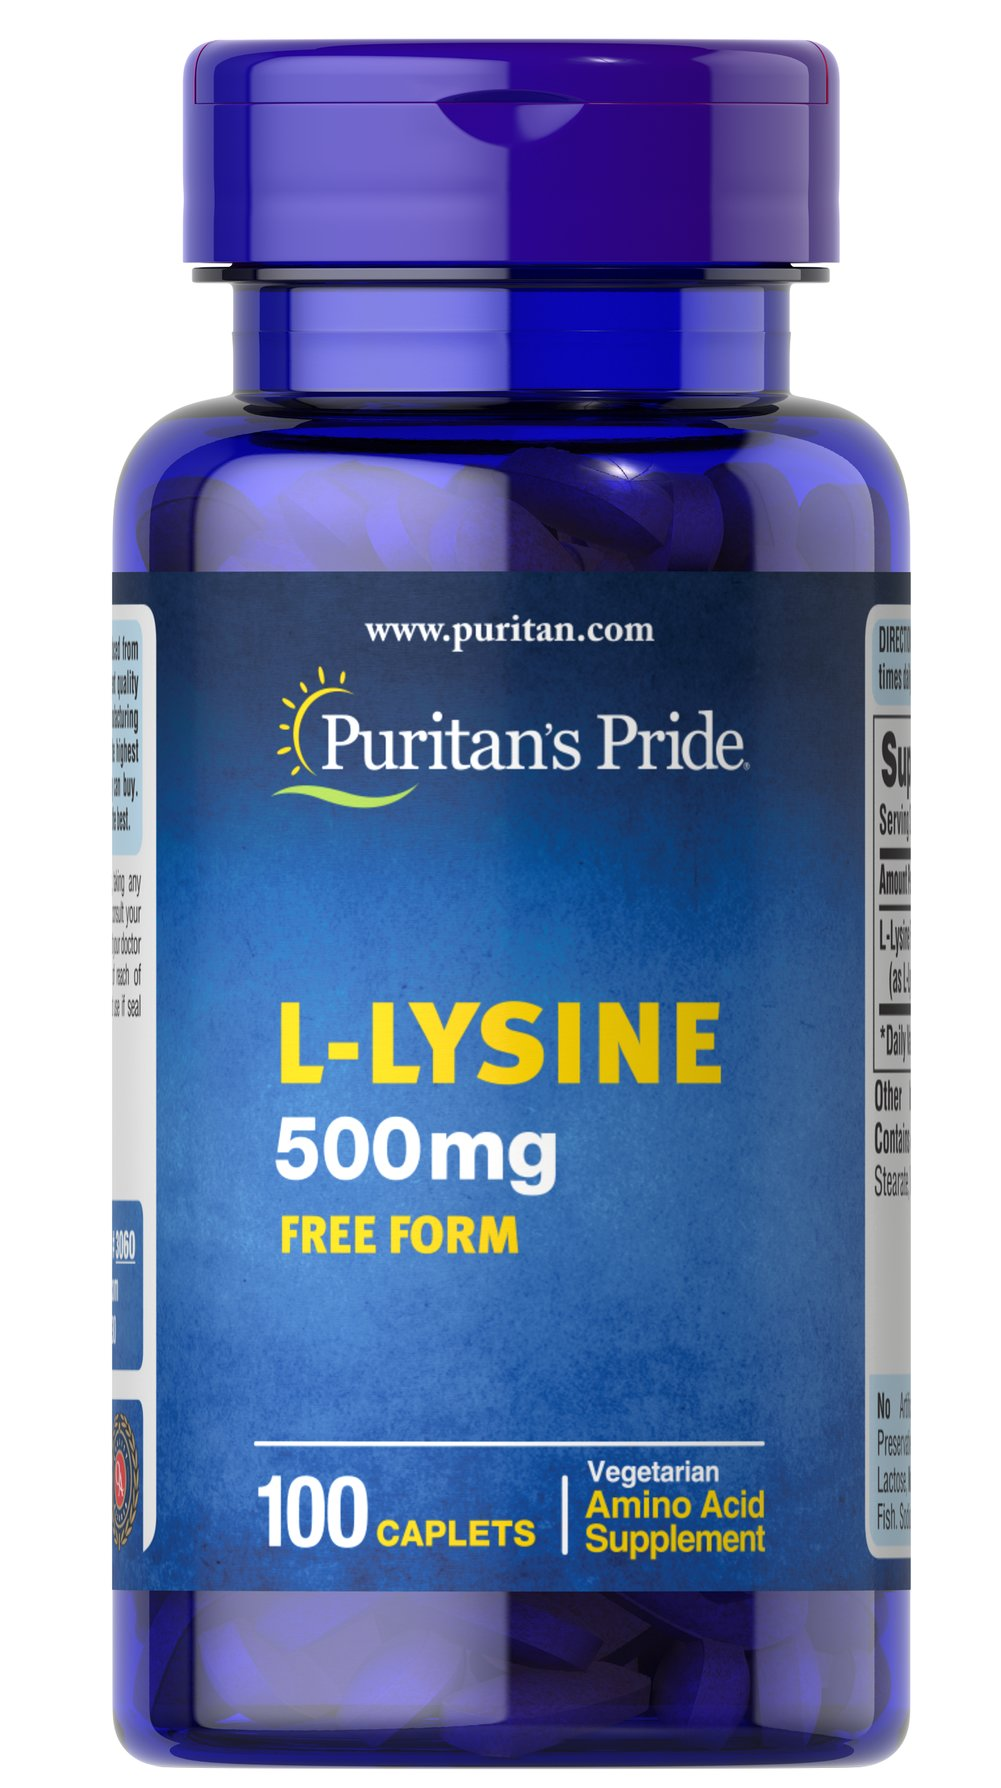 L-Lysine 500 mg <p>For Balanced Nutrition and Health**</p><p>Lysine is an indispensable amino acid that cannot be made by the body.** Amino acids form the basis for protein, which helps construct and maintain the critical structures in the body.** Lysine is also used for the health and integrity of skin.**</p> 100 Caplets 500 mg $6.99